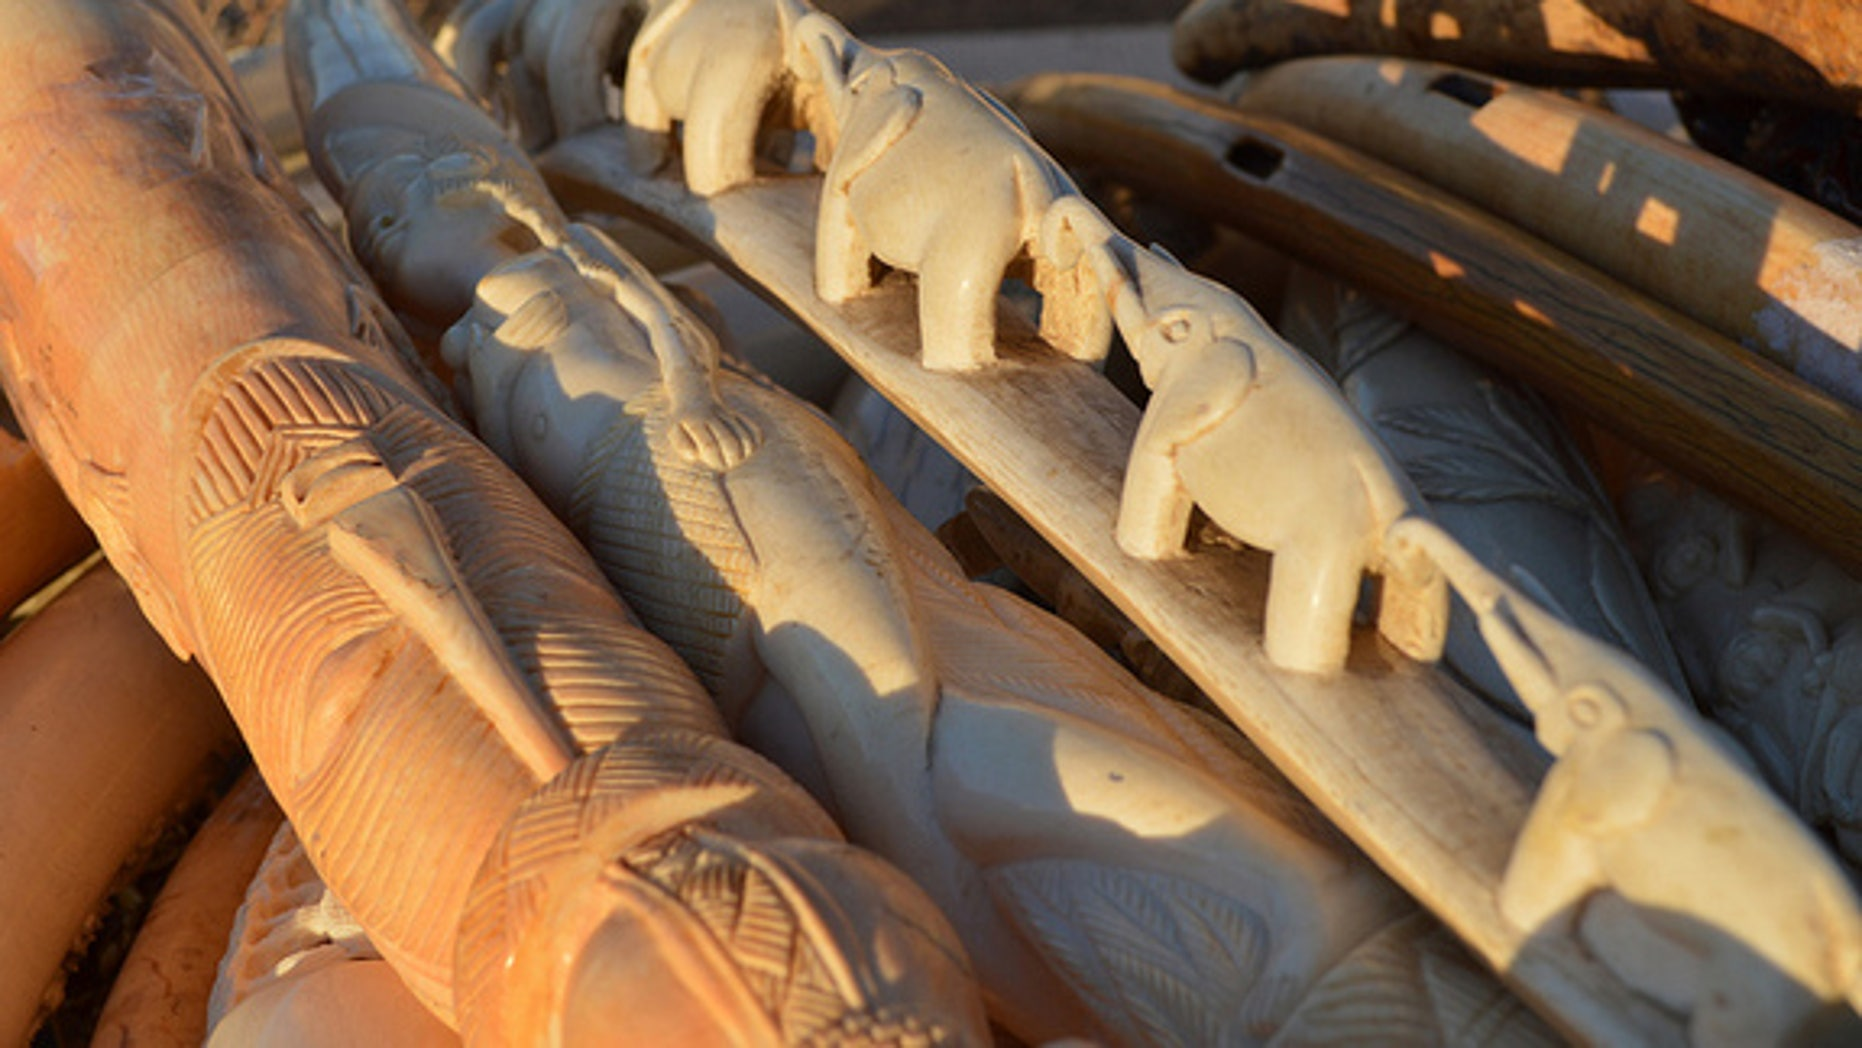 Ivory carvings awaiting destruction on the morning of Nov. 14, 2013.